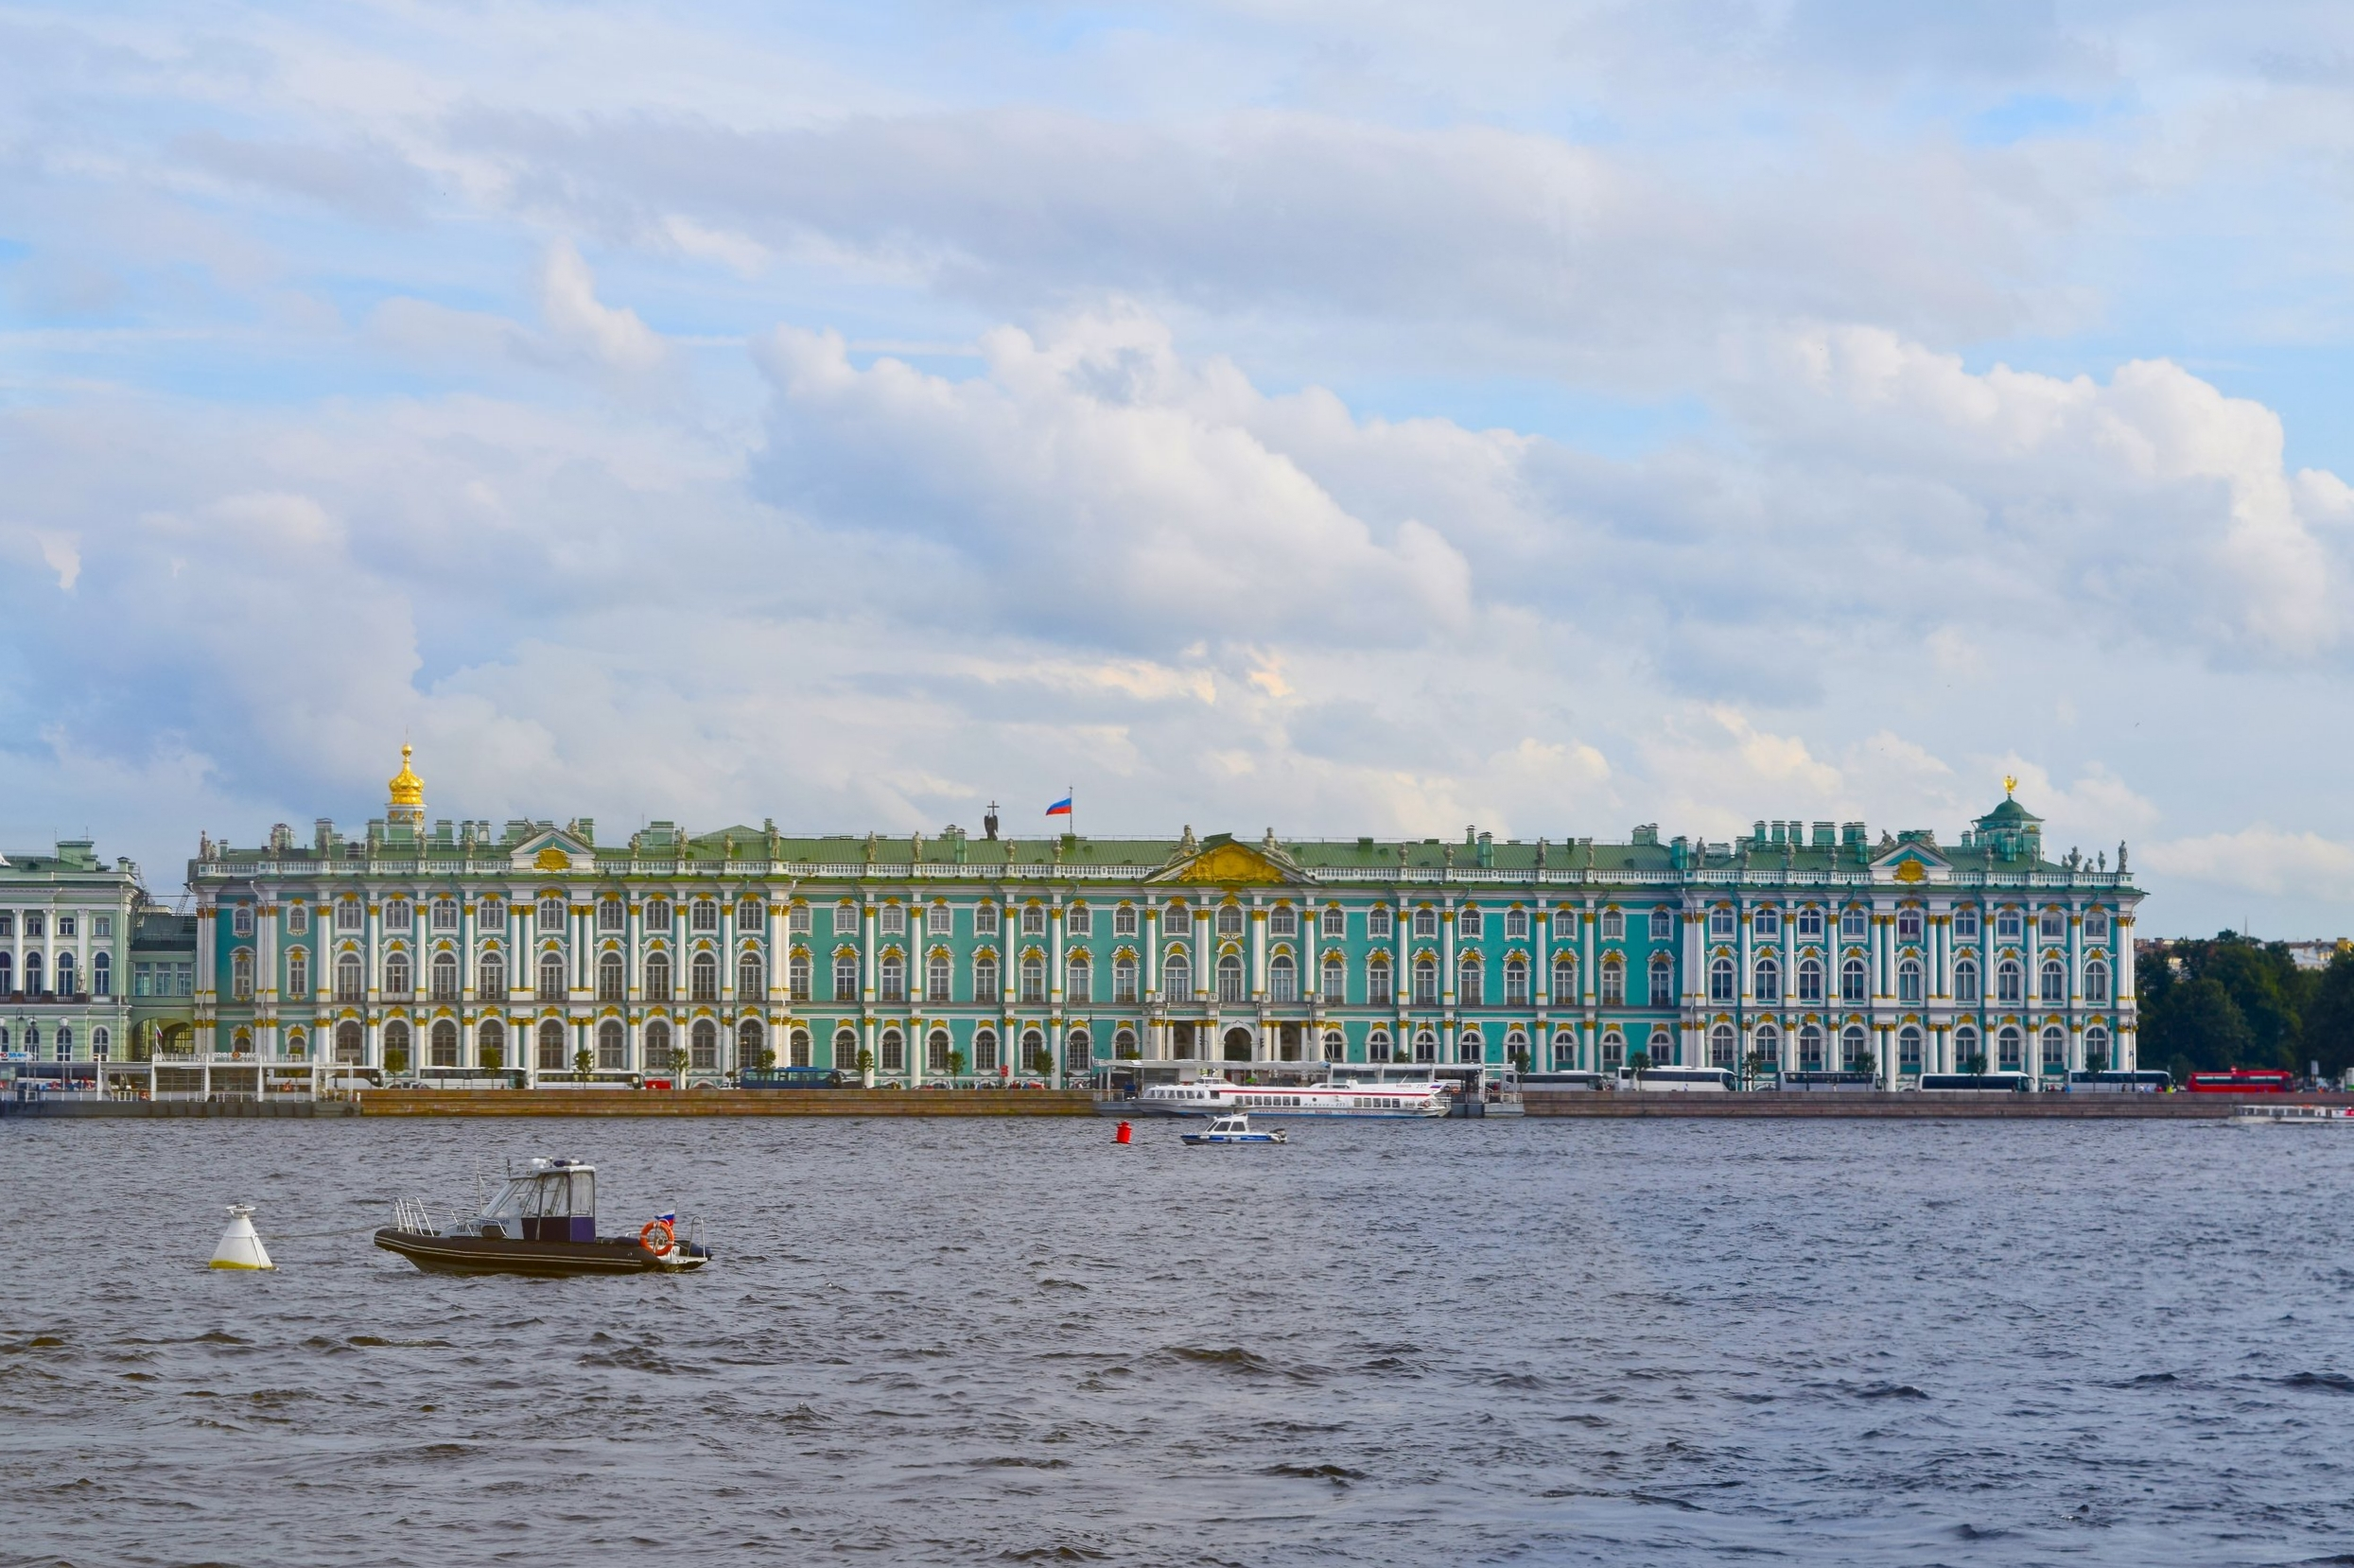 Hermitage Museum & Winter Palace from the Neva River